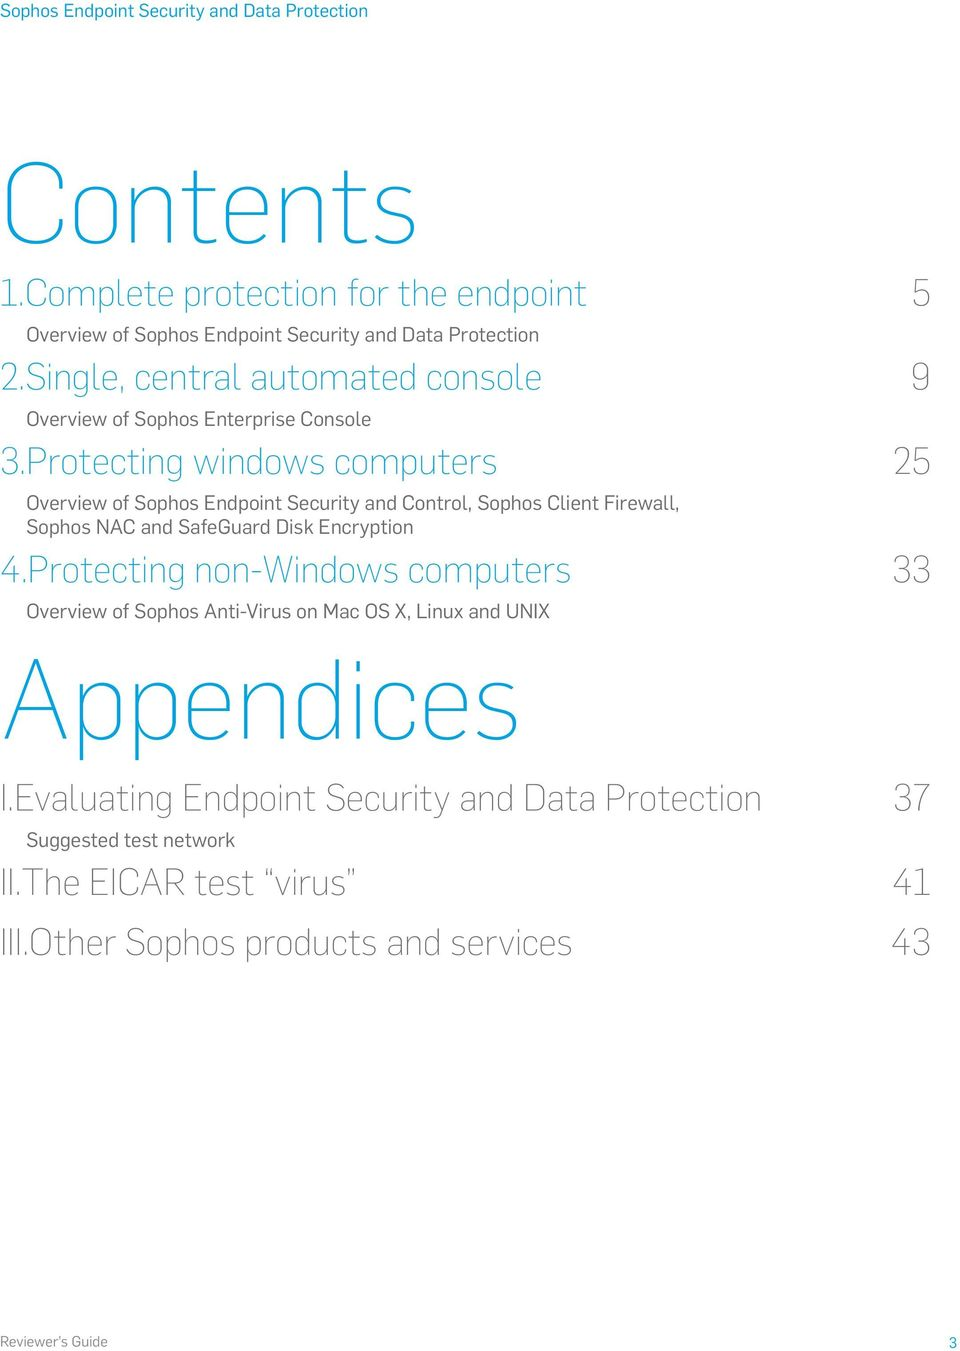 Sophos Endpoint Security and Data Protection - PDF